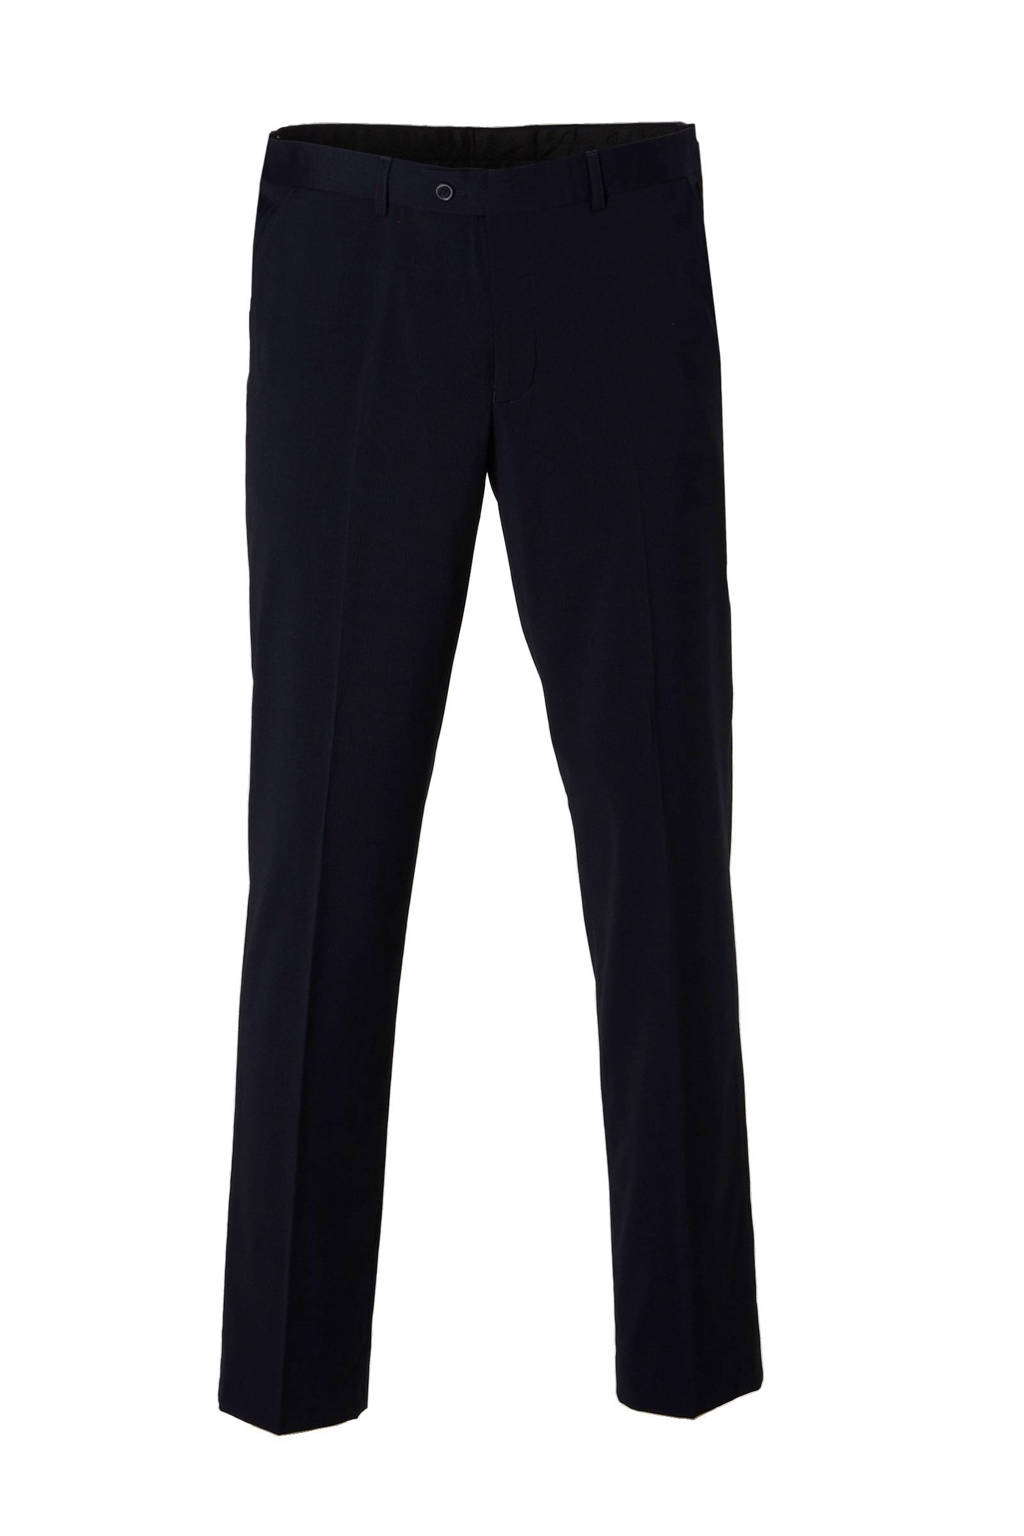 C&A Angelo Litrico slim fit pantalon, Donkerblauw